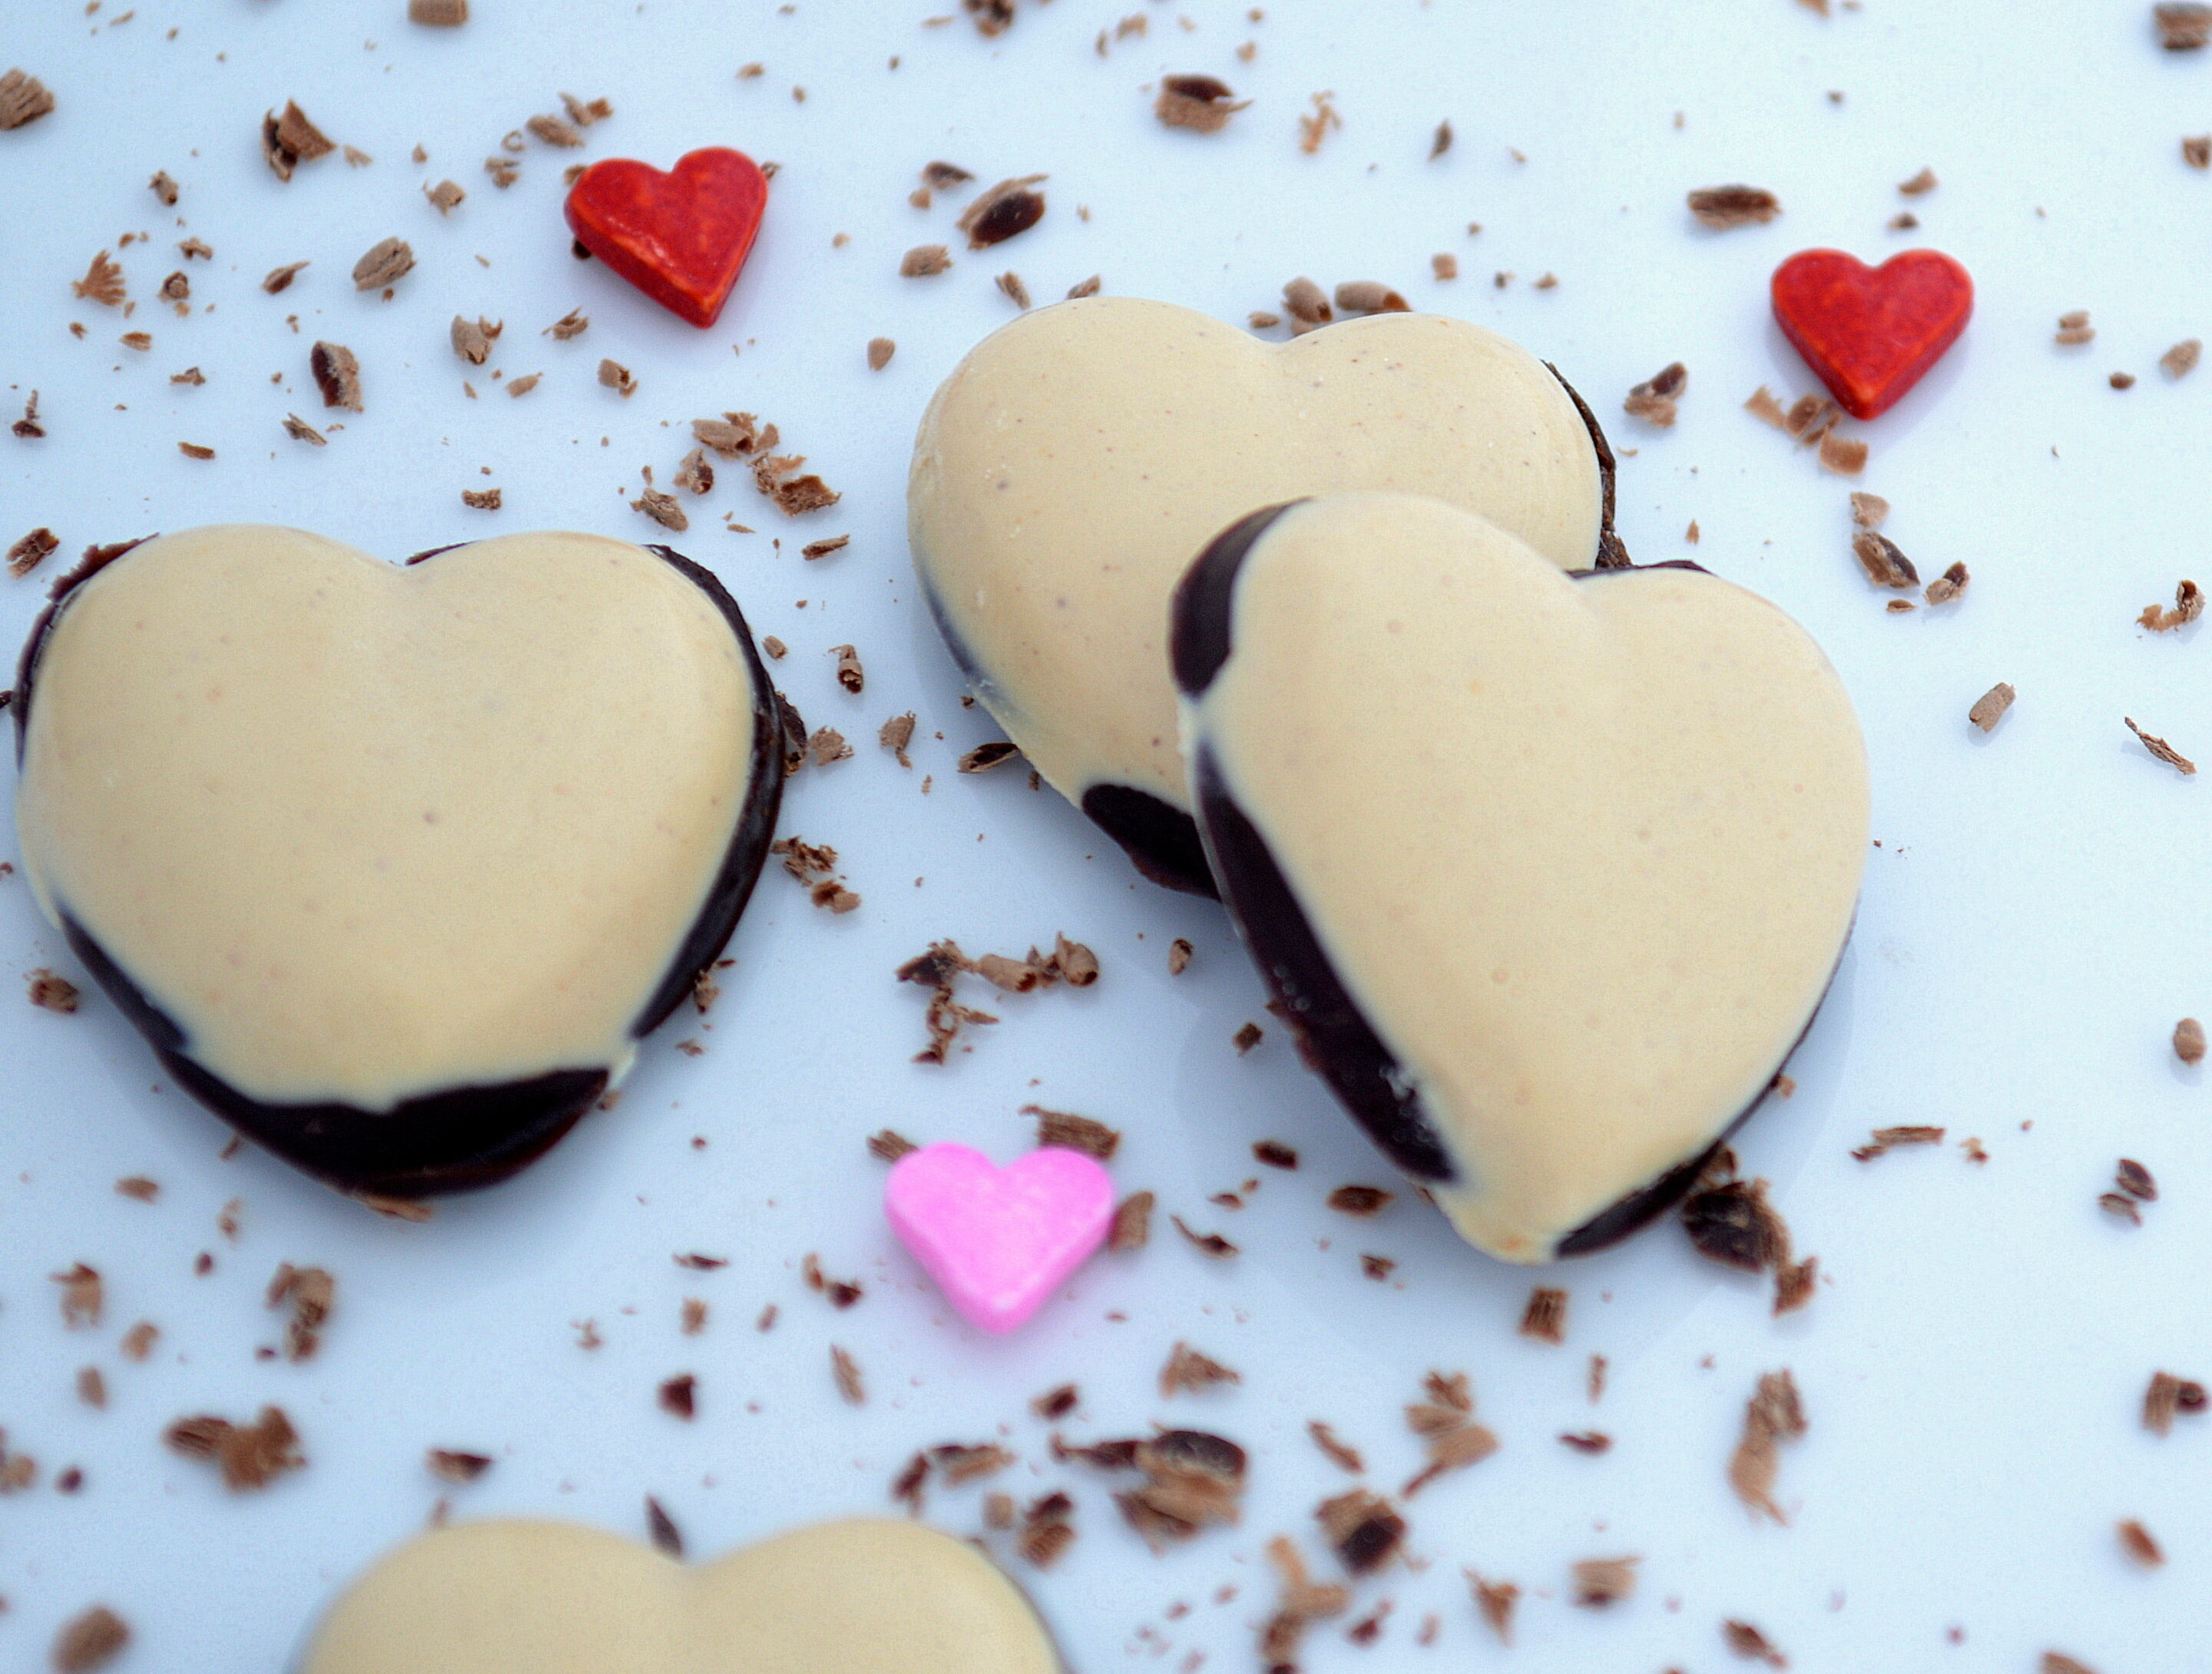 4 Ingredient Chocolate and Peanut Butter Valentine's Day Hearts